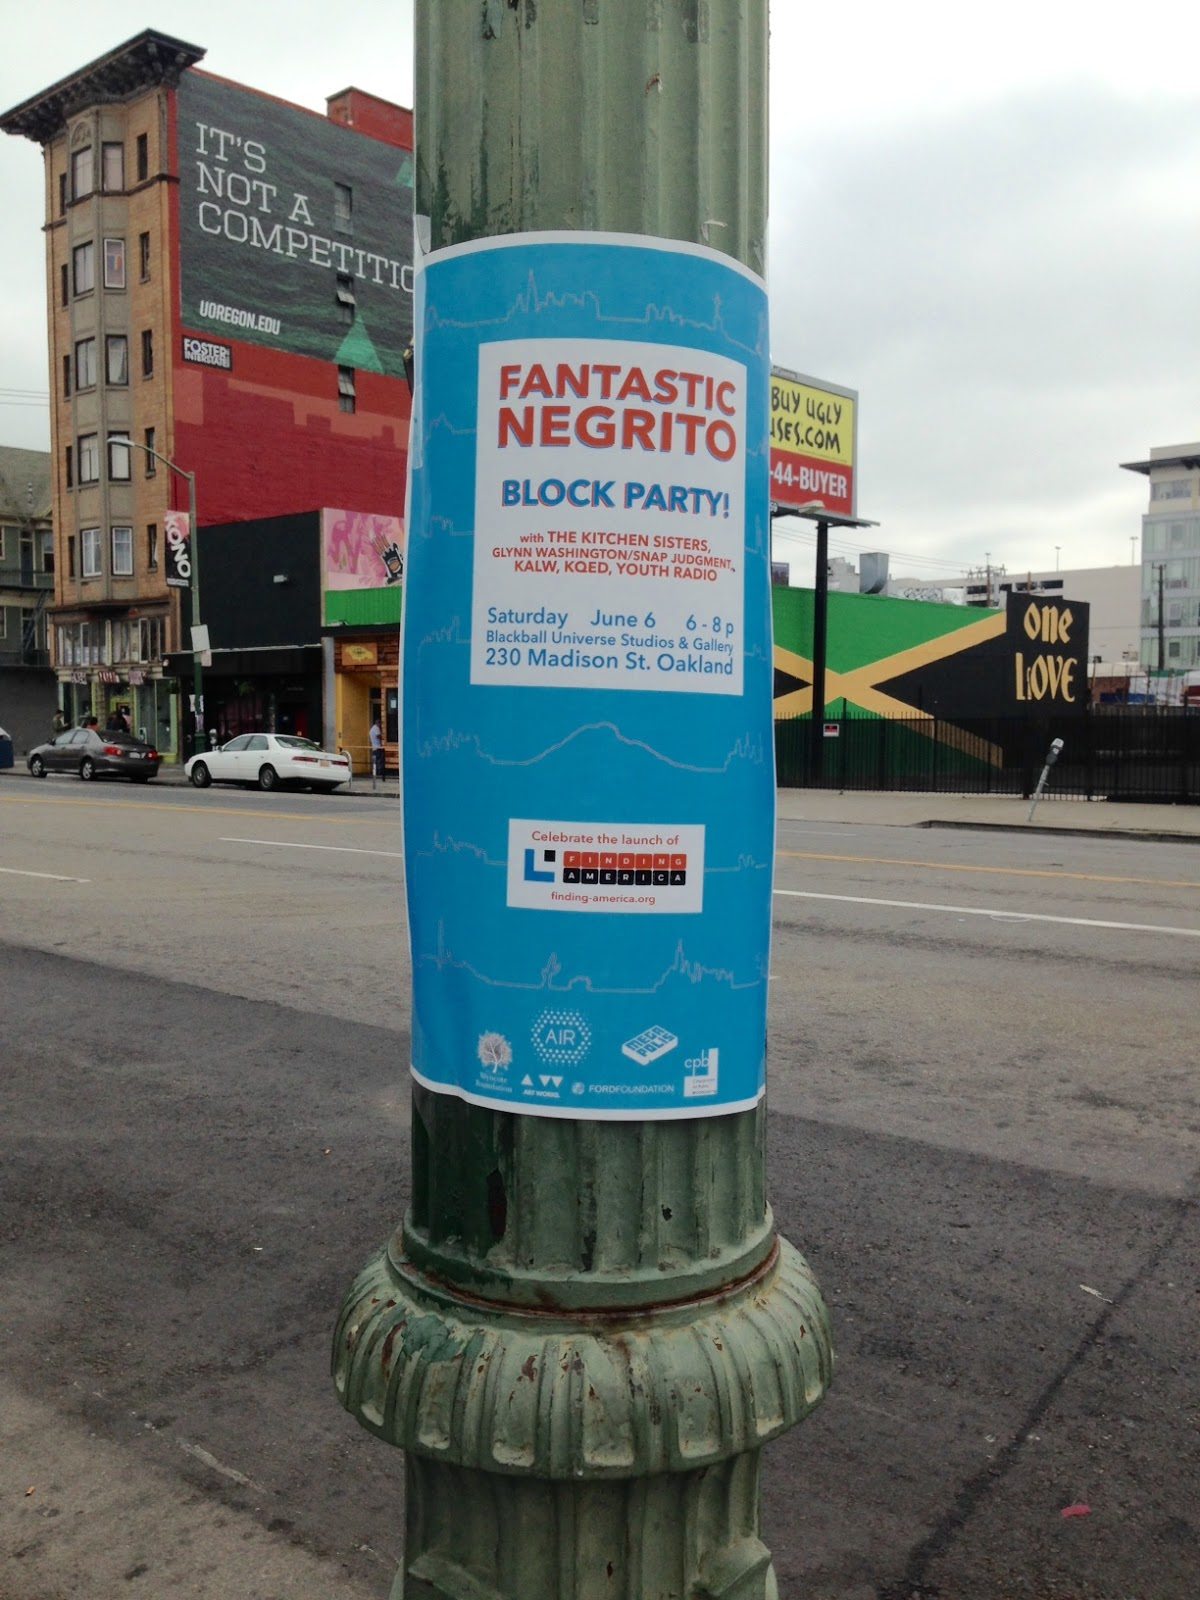 The printed poster, wrapped around a light pole in Oakland.